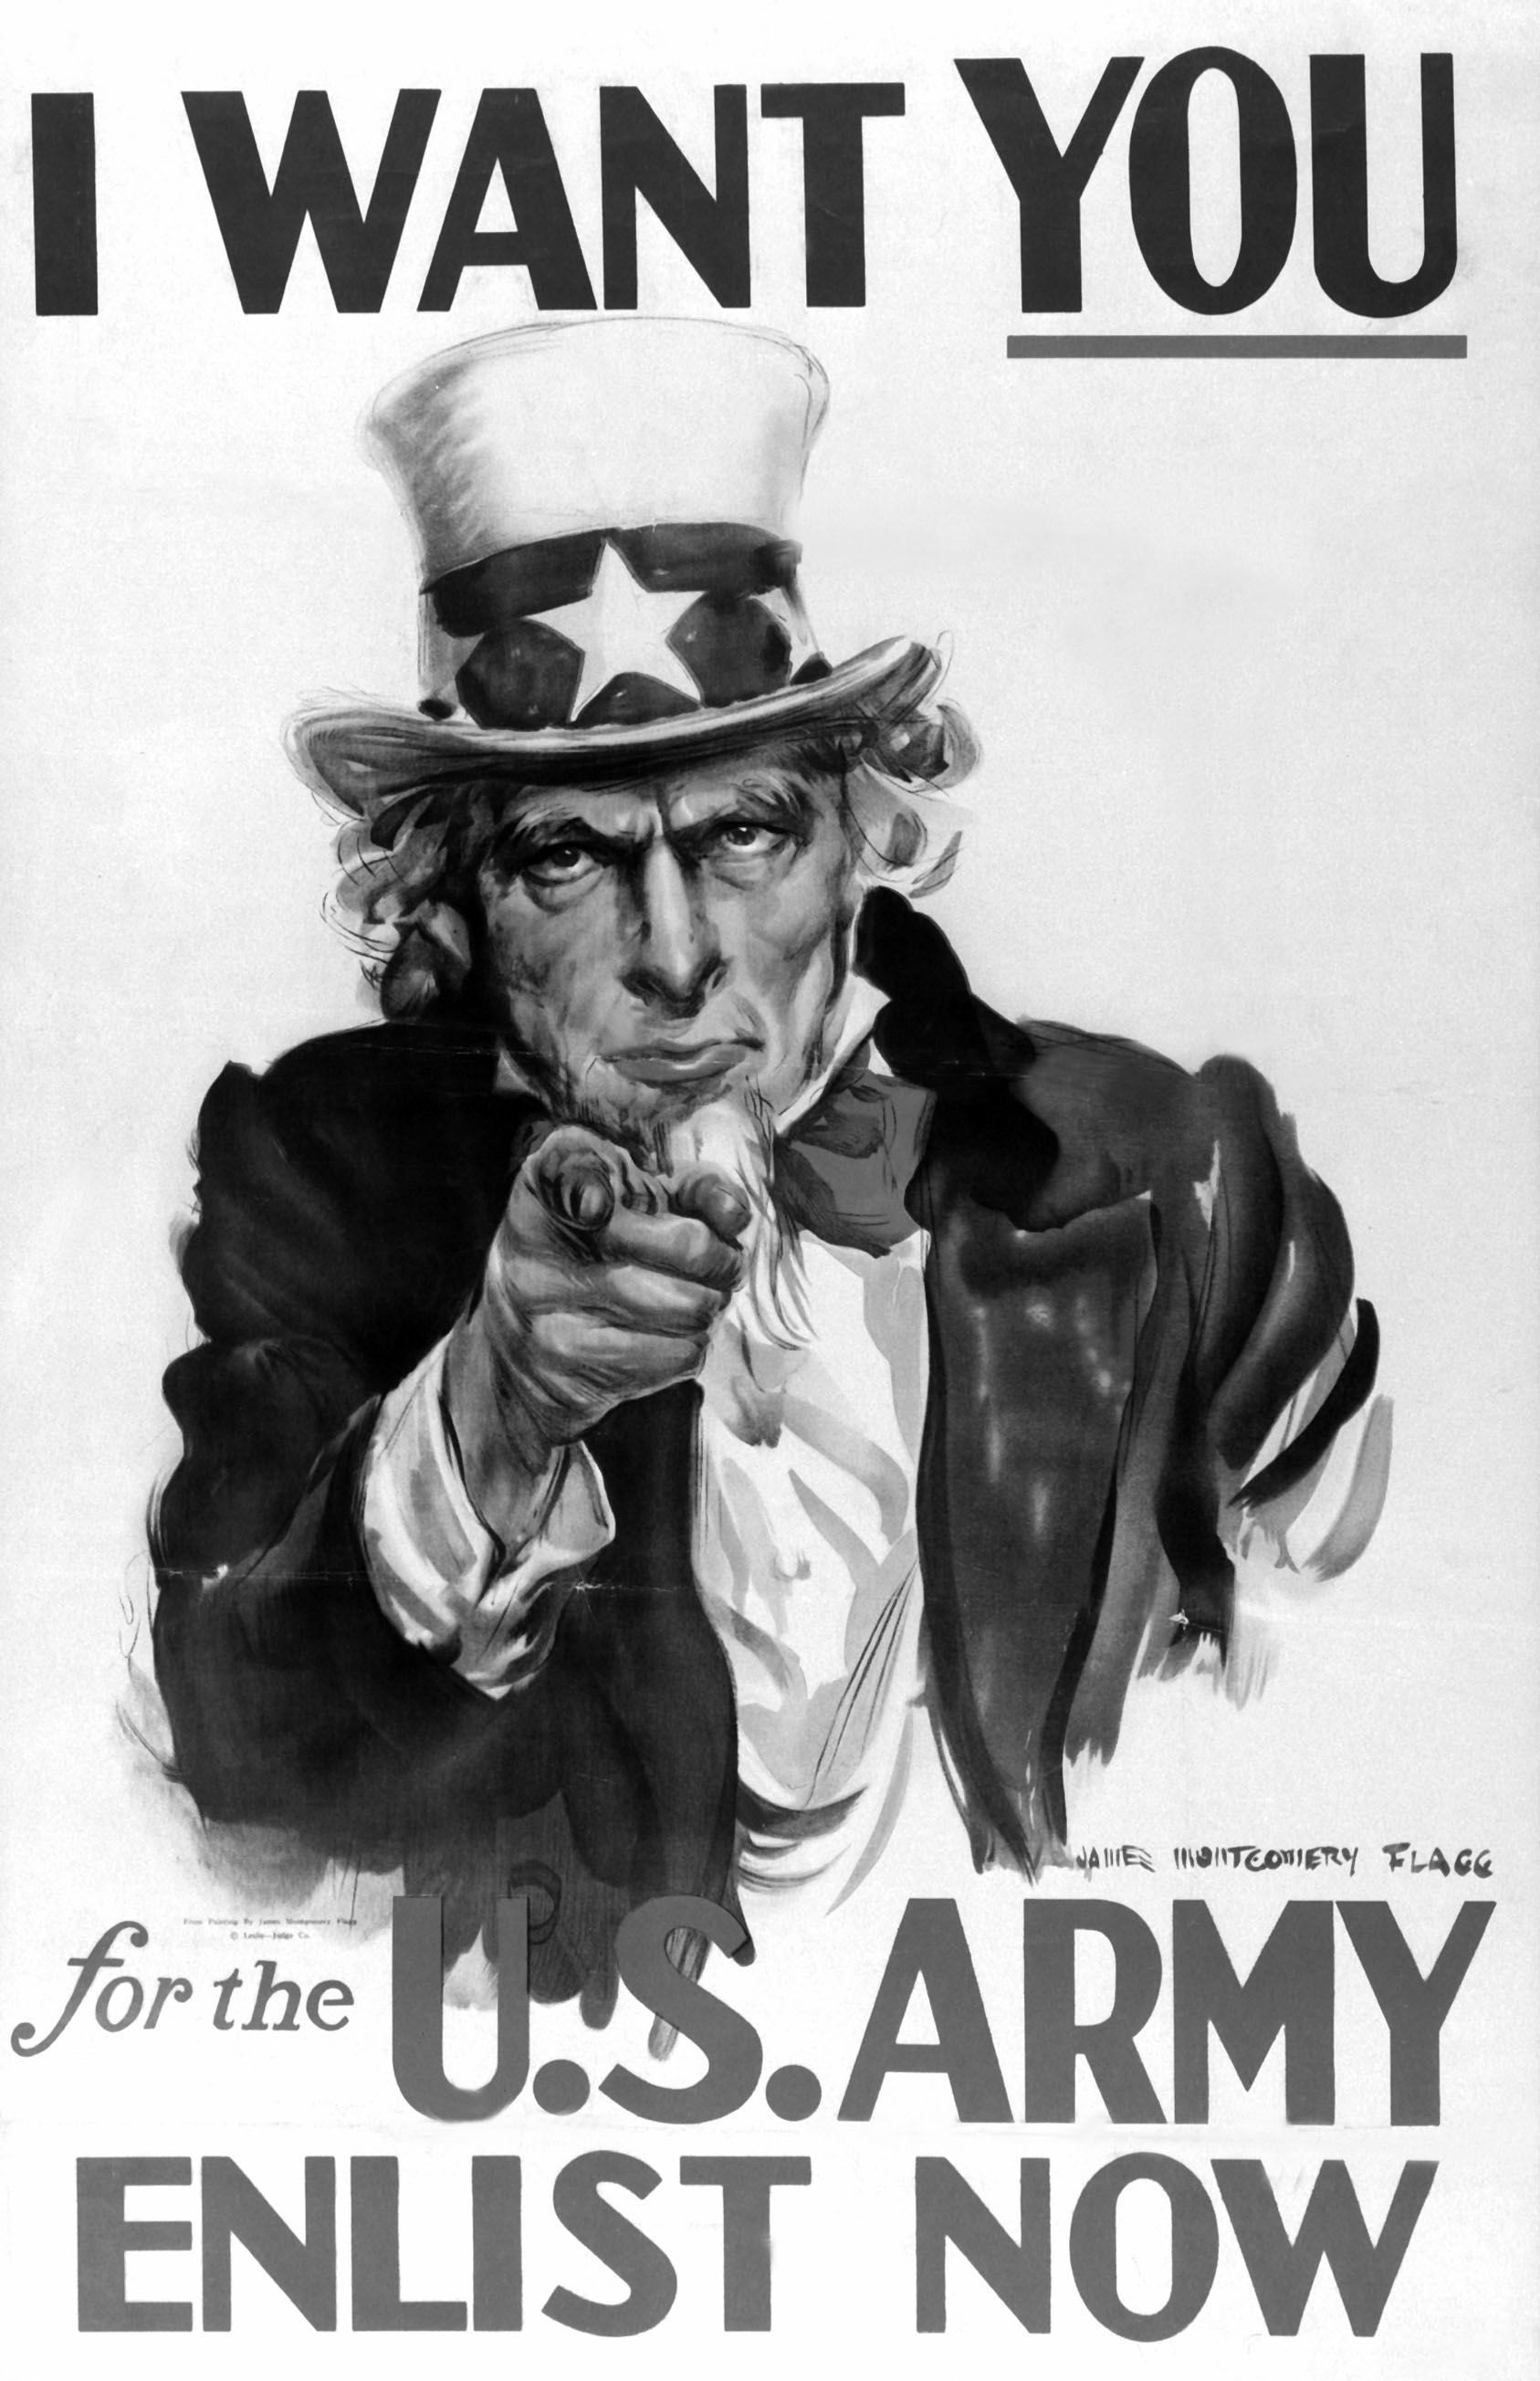 Uncle Sam Is The Man In The Picture And This Is The Poster They